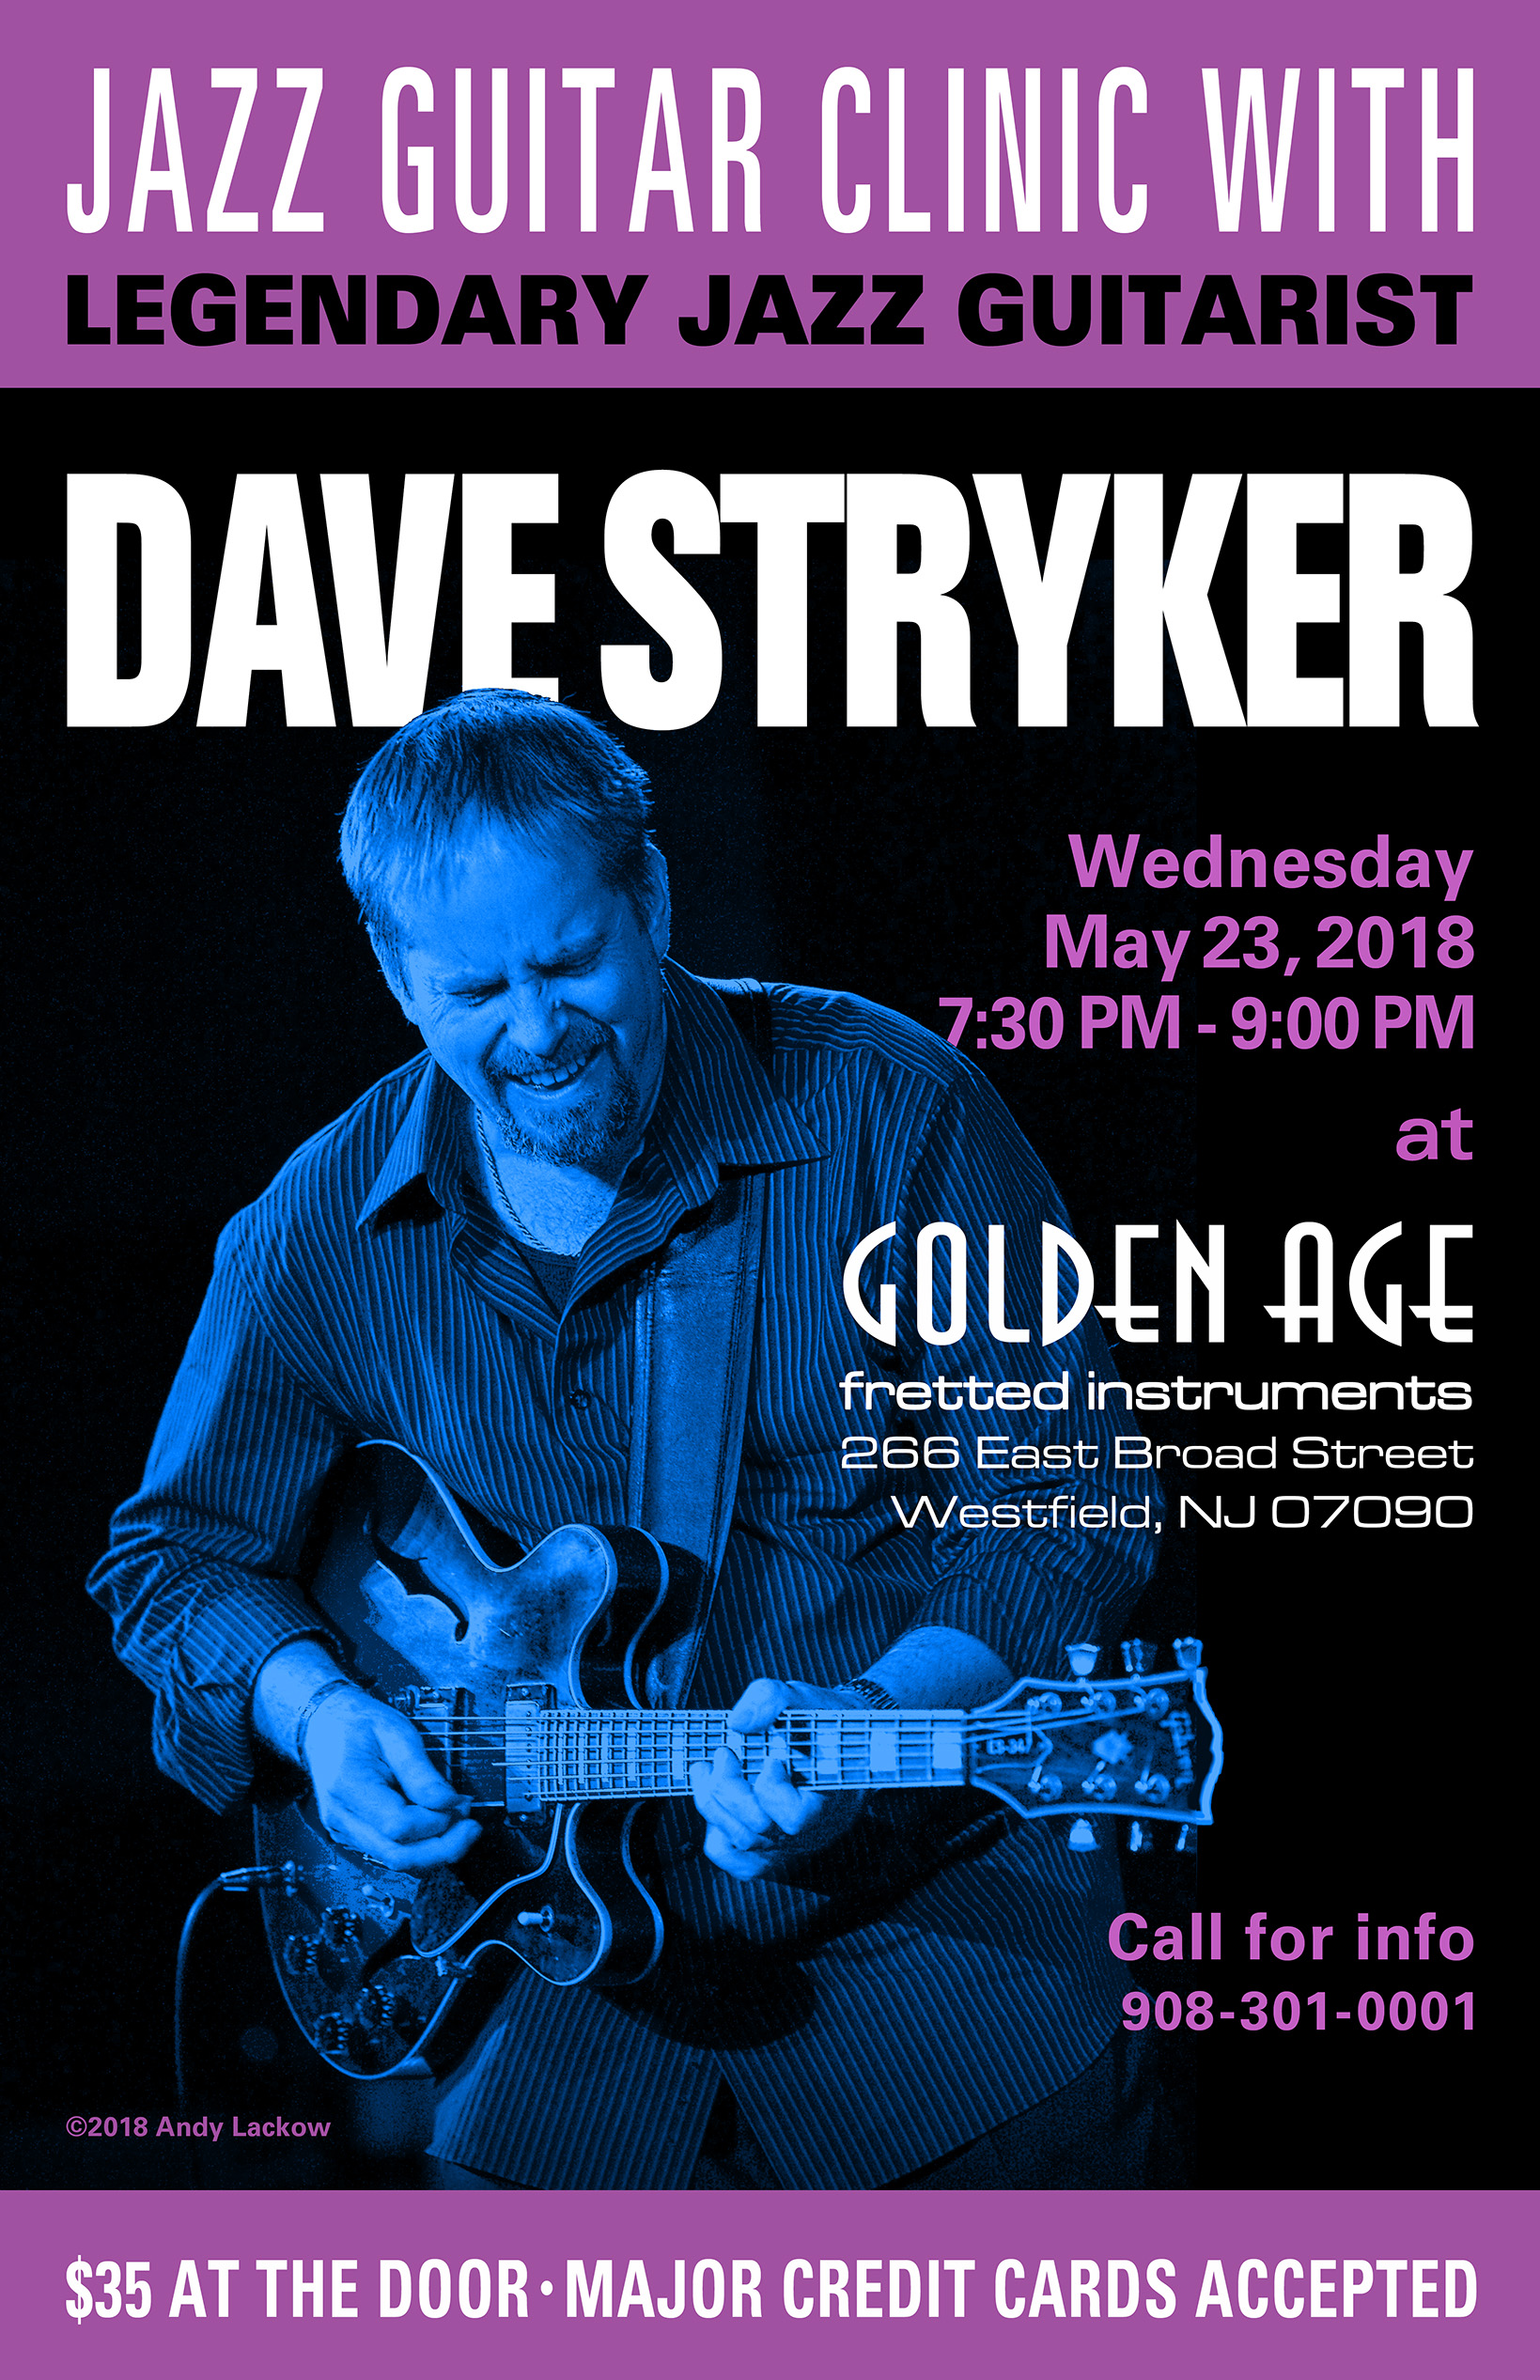 Dave Stryker Jazz Guitar Clinic